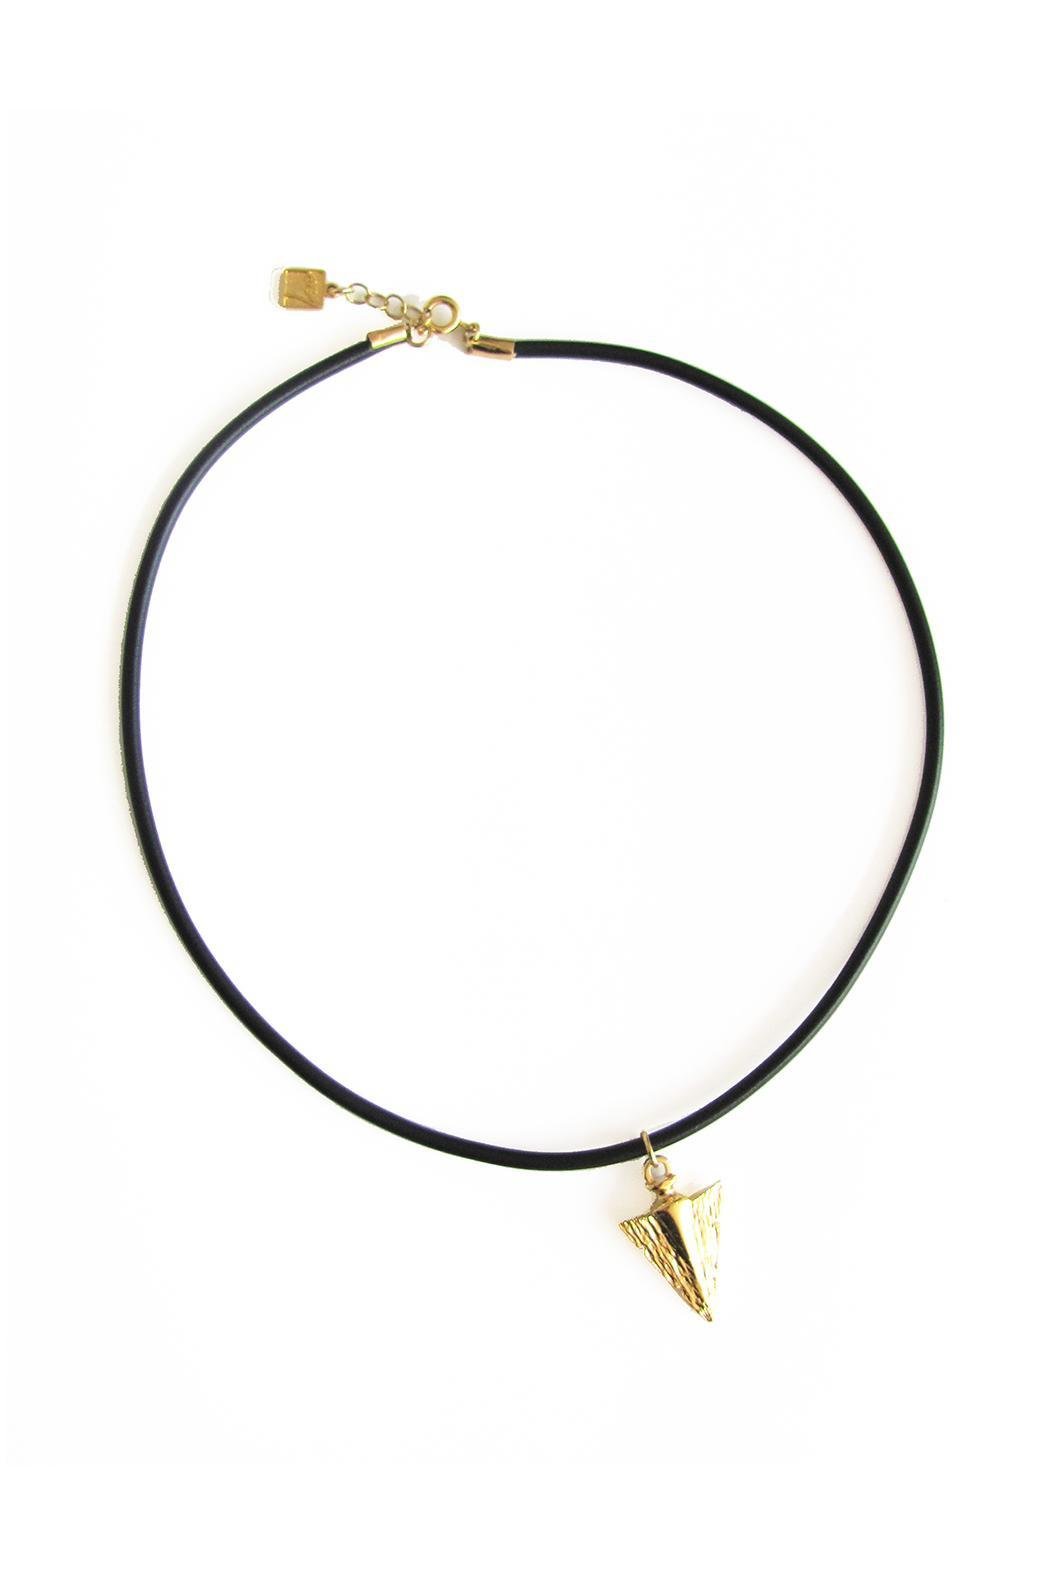 Malia Jewelry Arrow Black Choker - Main Image